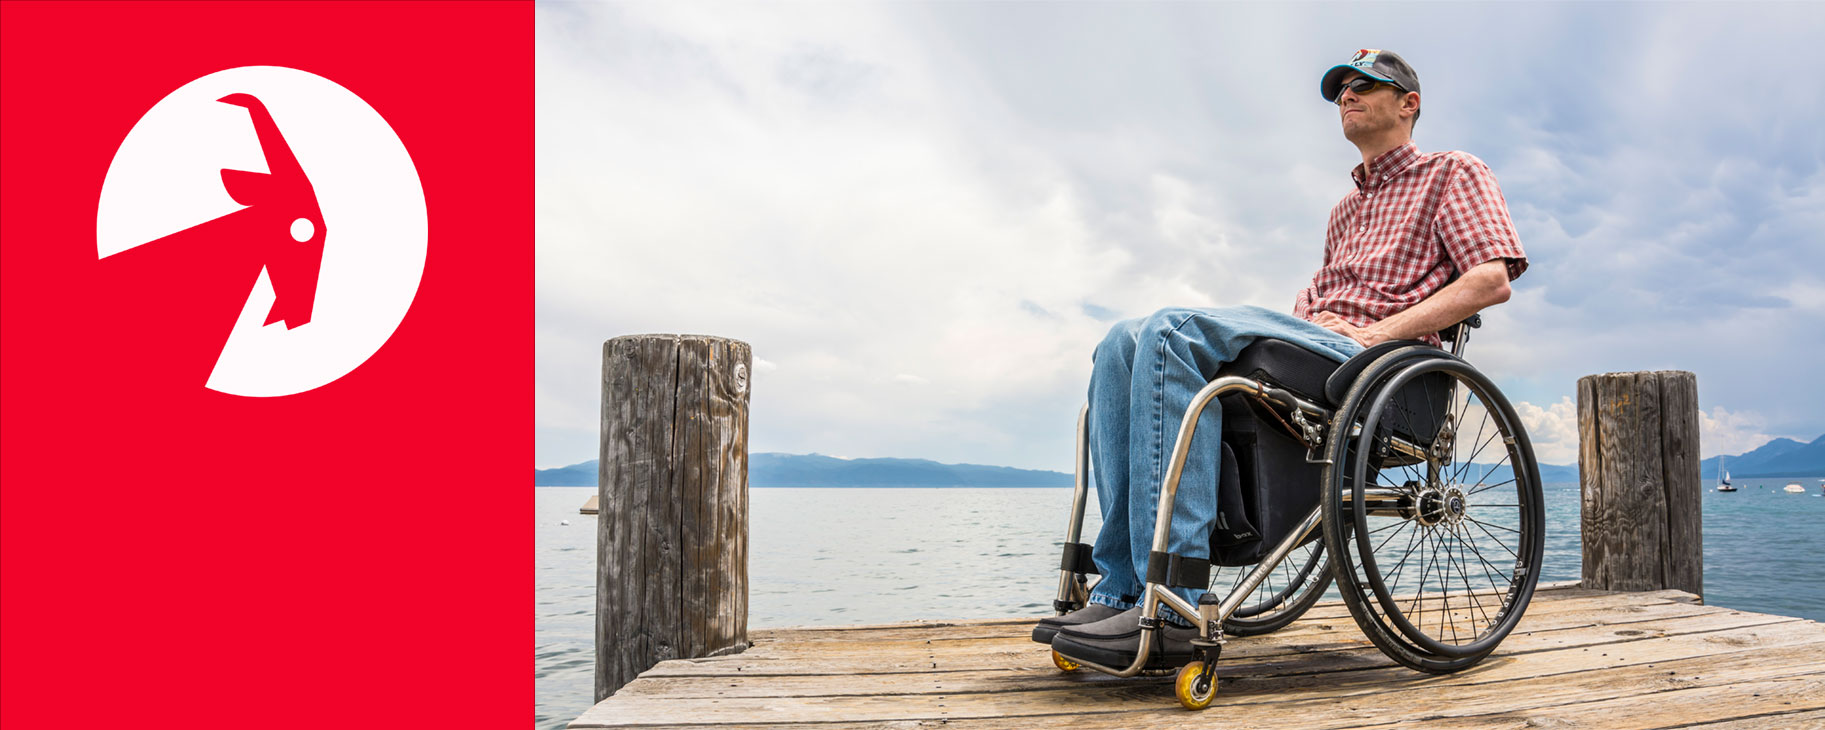 Billy Price in his wheelchair on a scenic jetty